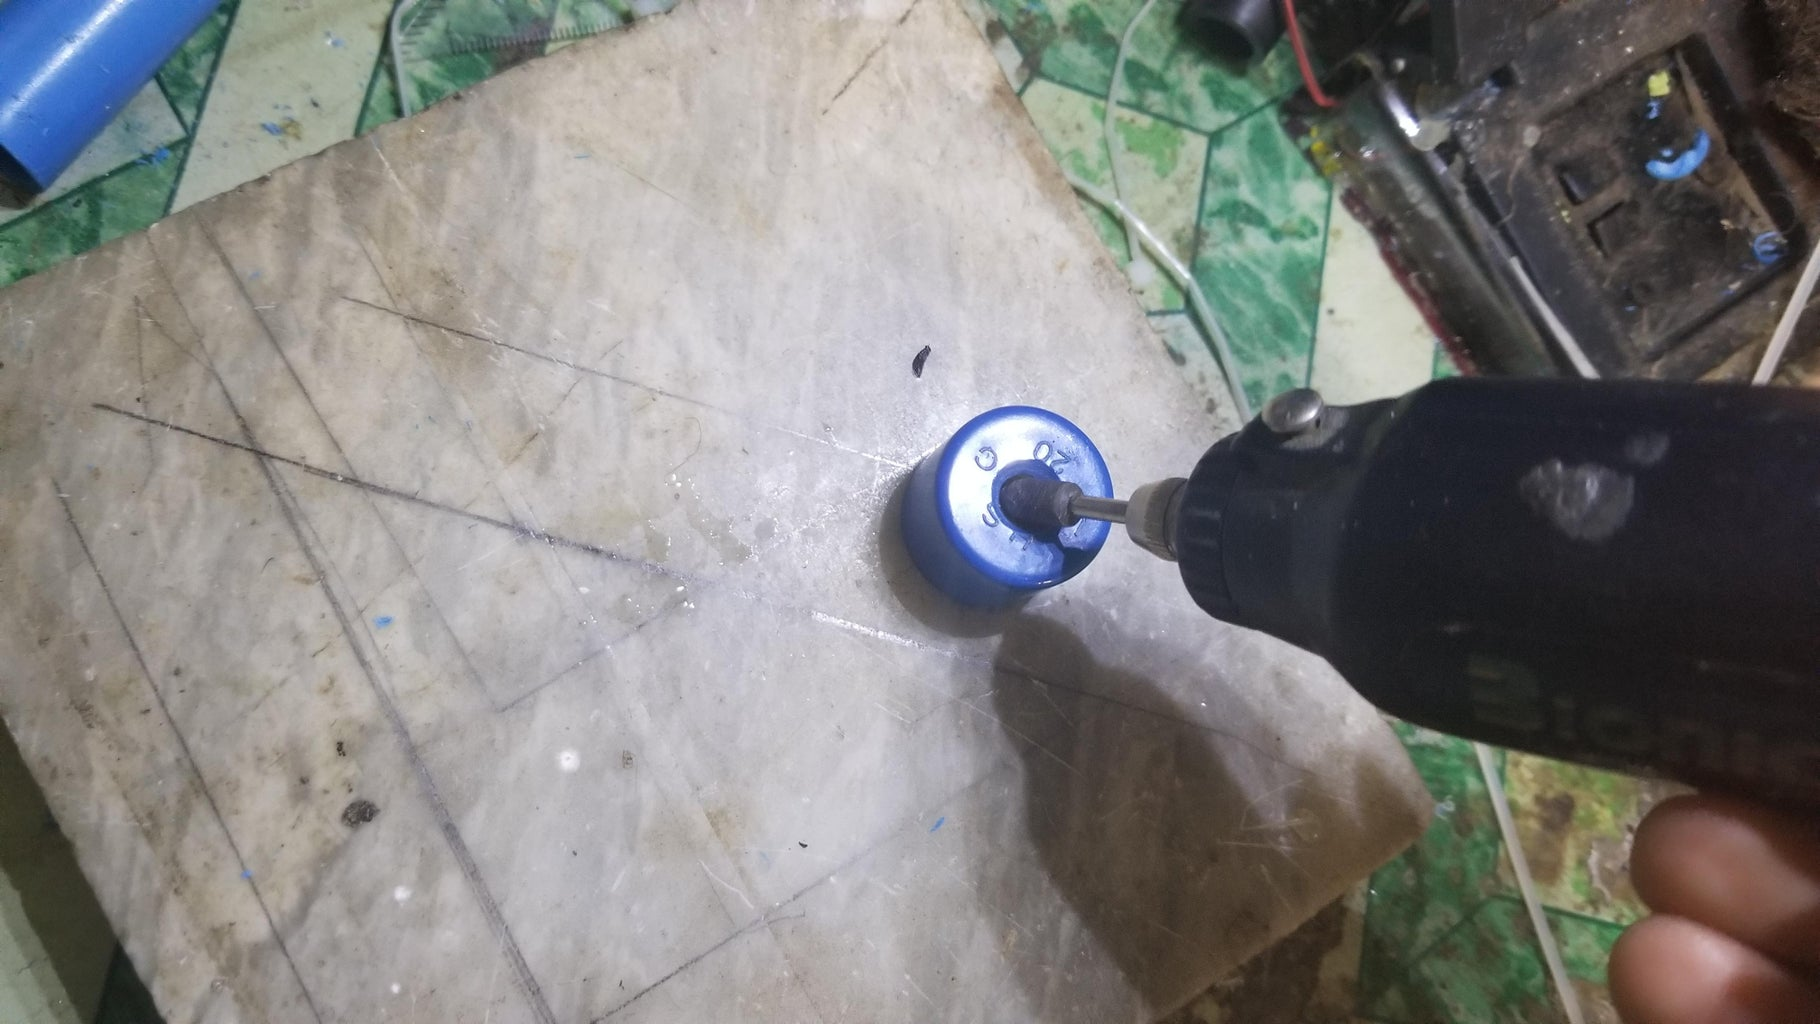 Making the Nozzle for Air